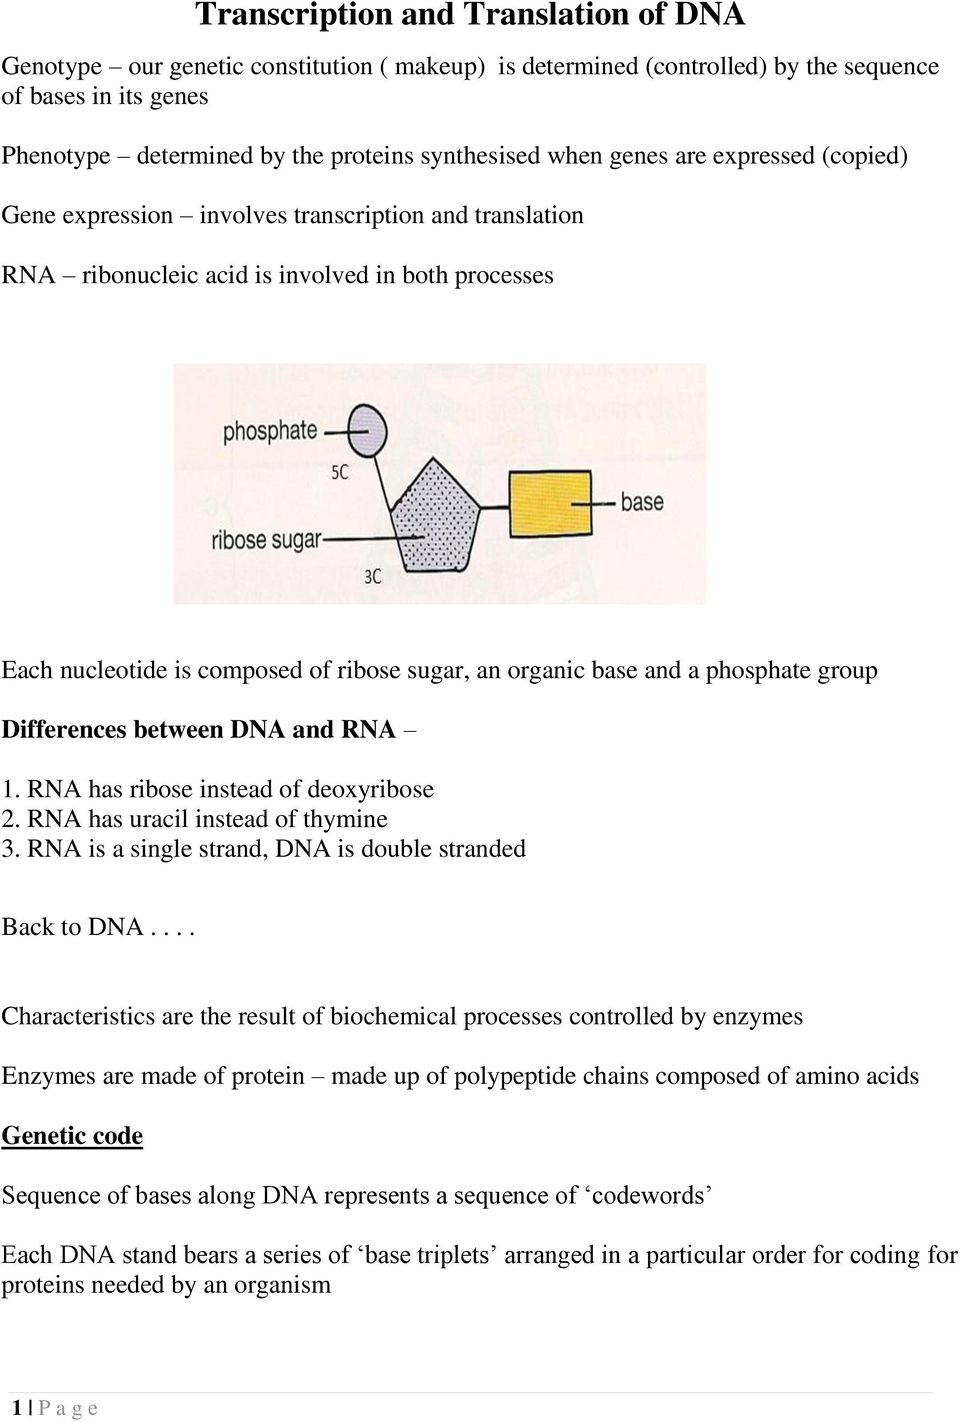 a phosphate group Differences between DNA and RNA 1. RNA has ribose instead of deoxyribose 2. RNA has uracil instead of thymine 3. RNA is a single strand, DNA is double stranded Back to DNA.